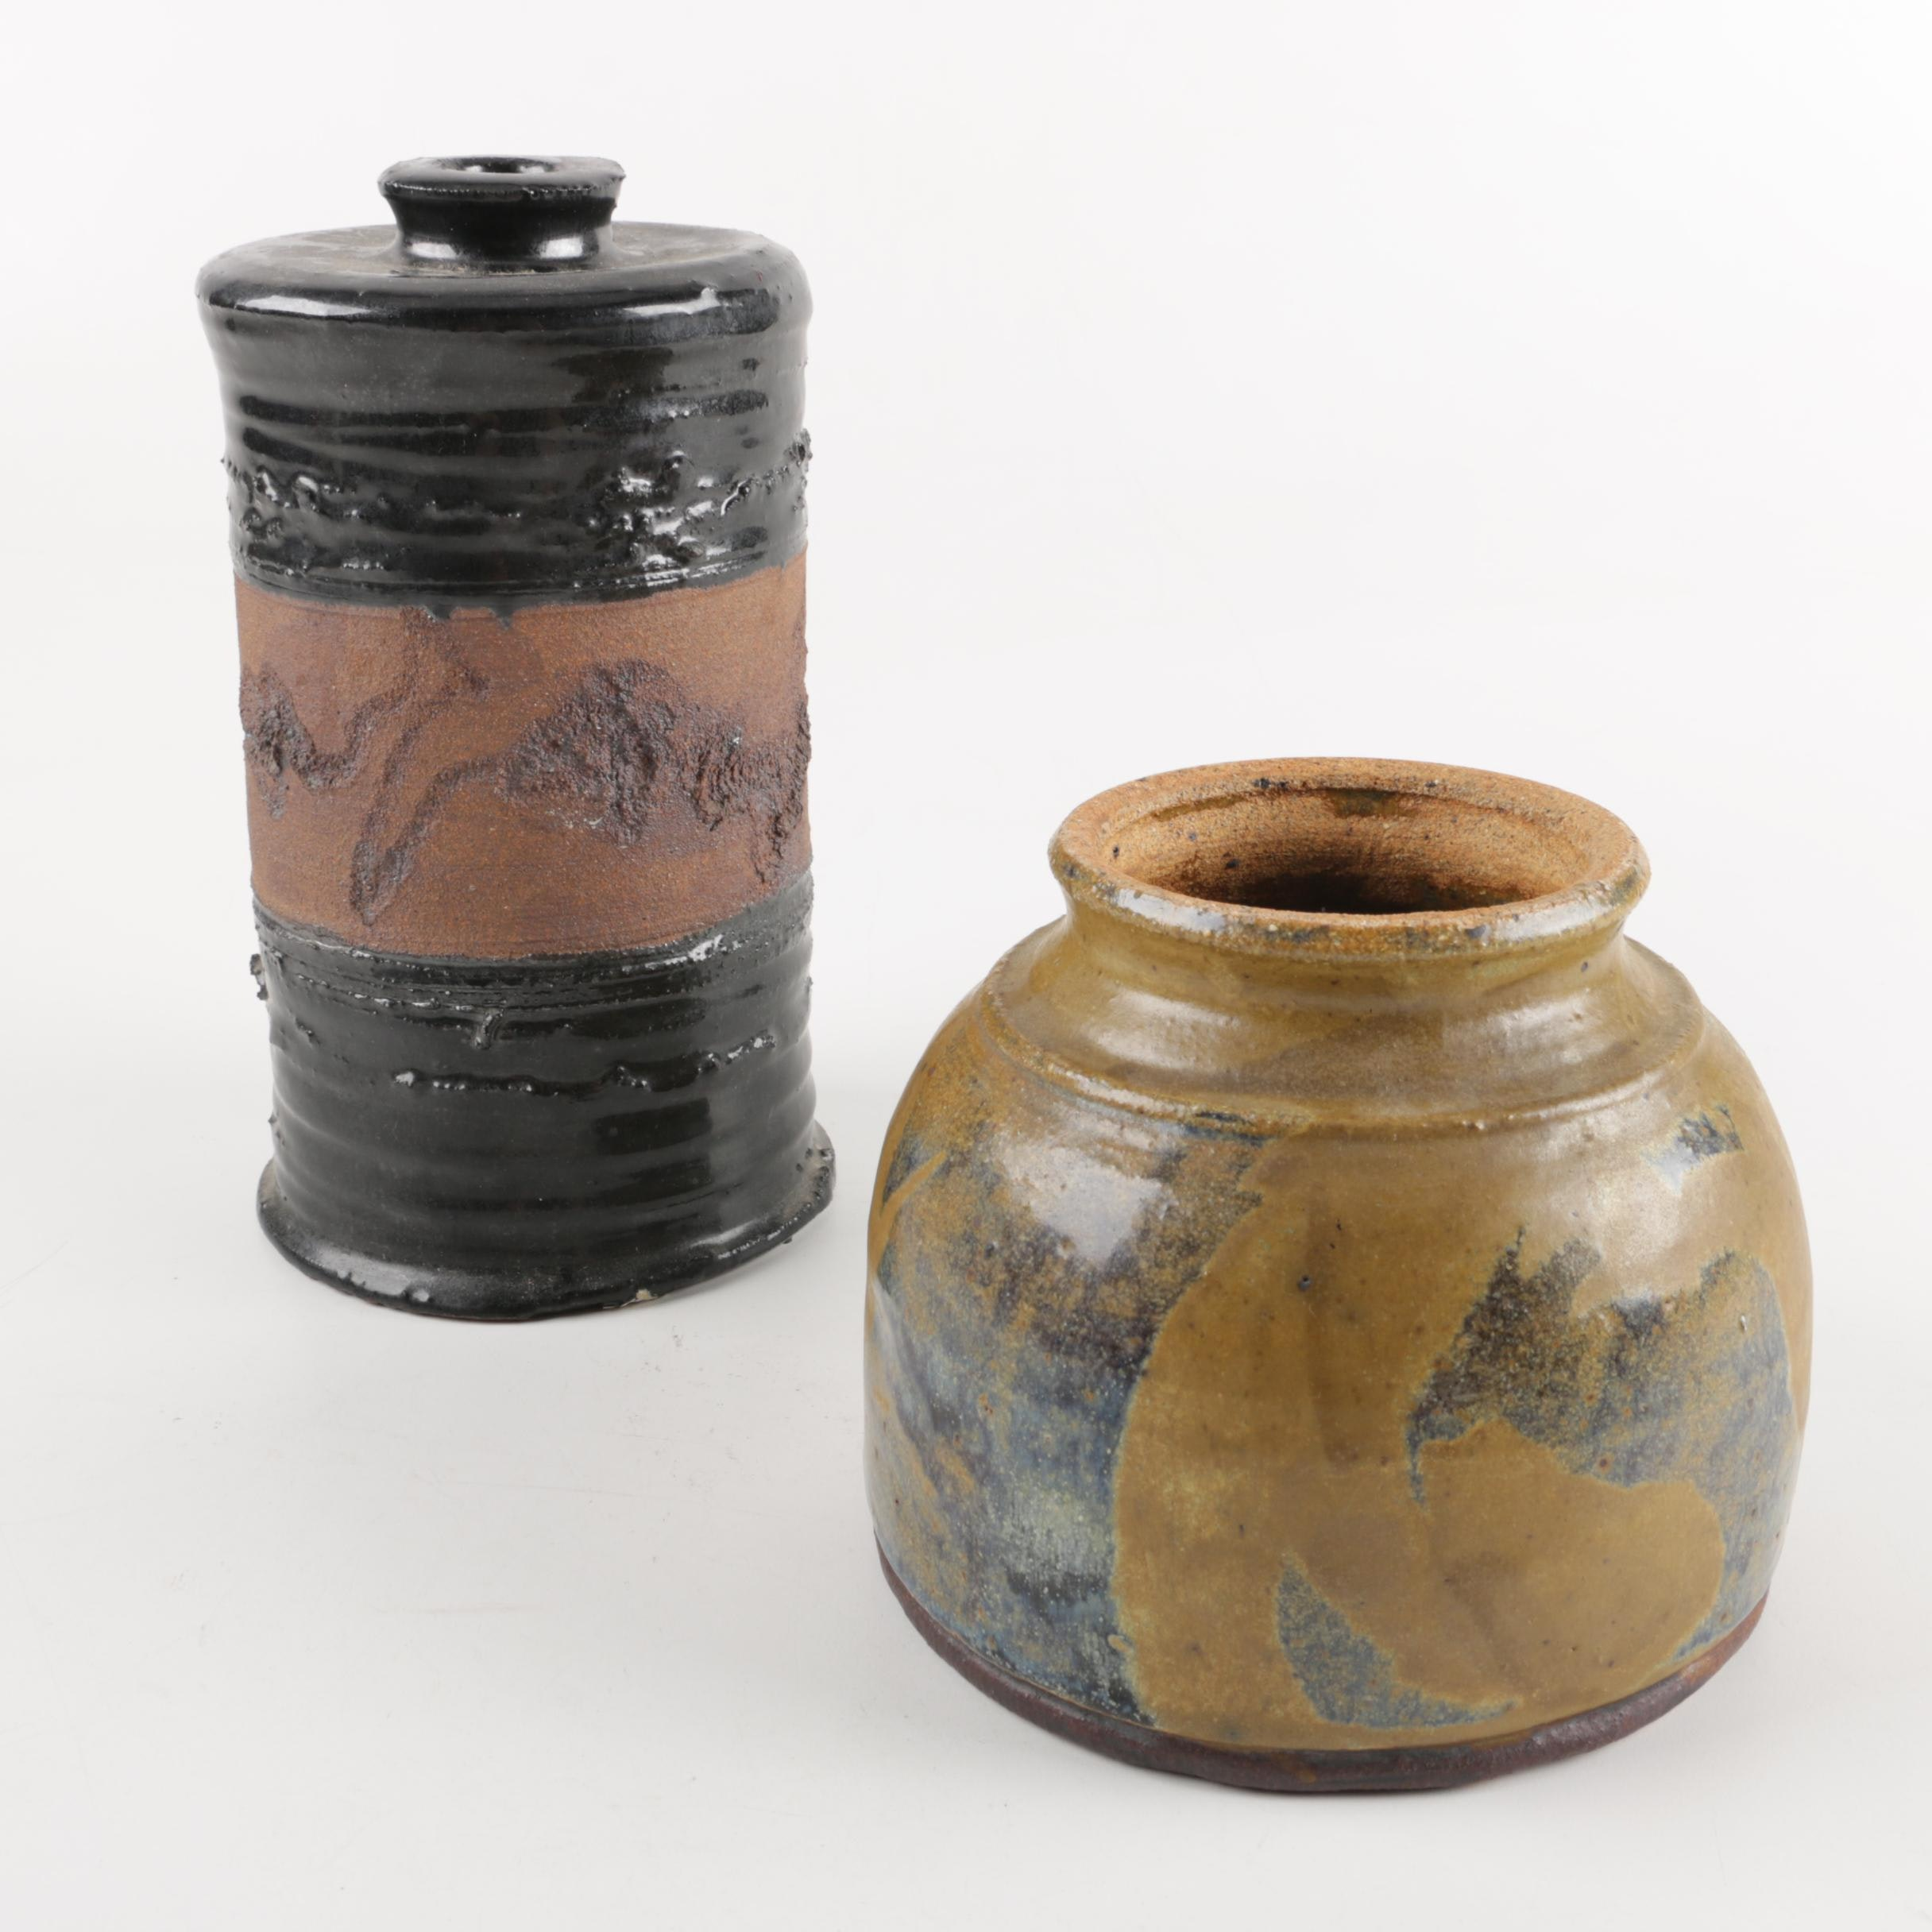 Pair of Handcrafted Stoneware Vessels